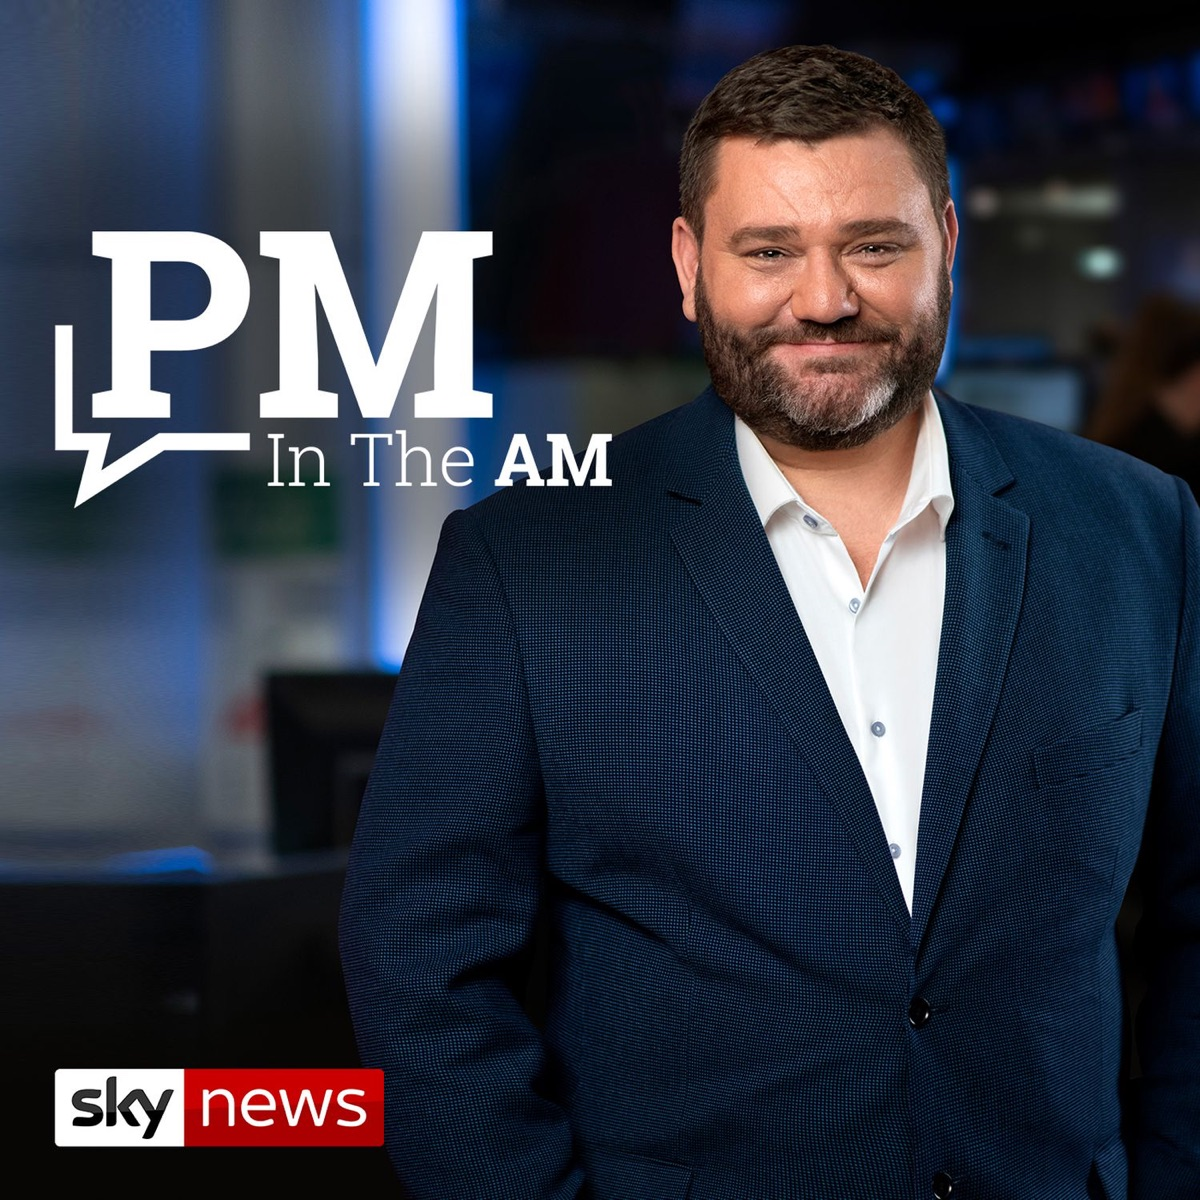 Sky News - PM in the AM